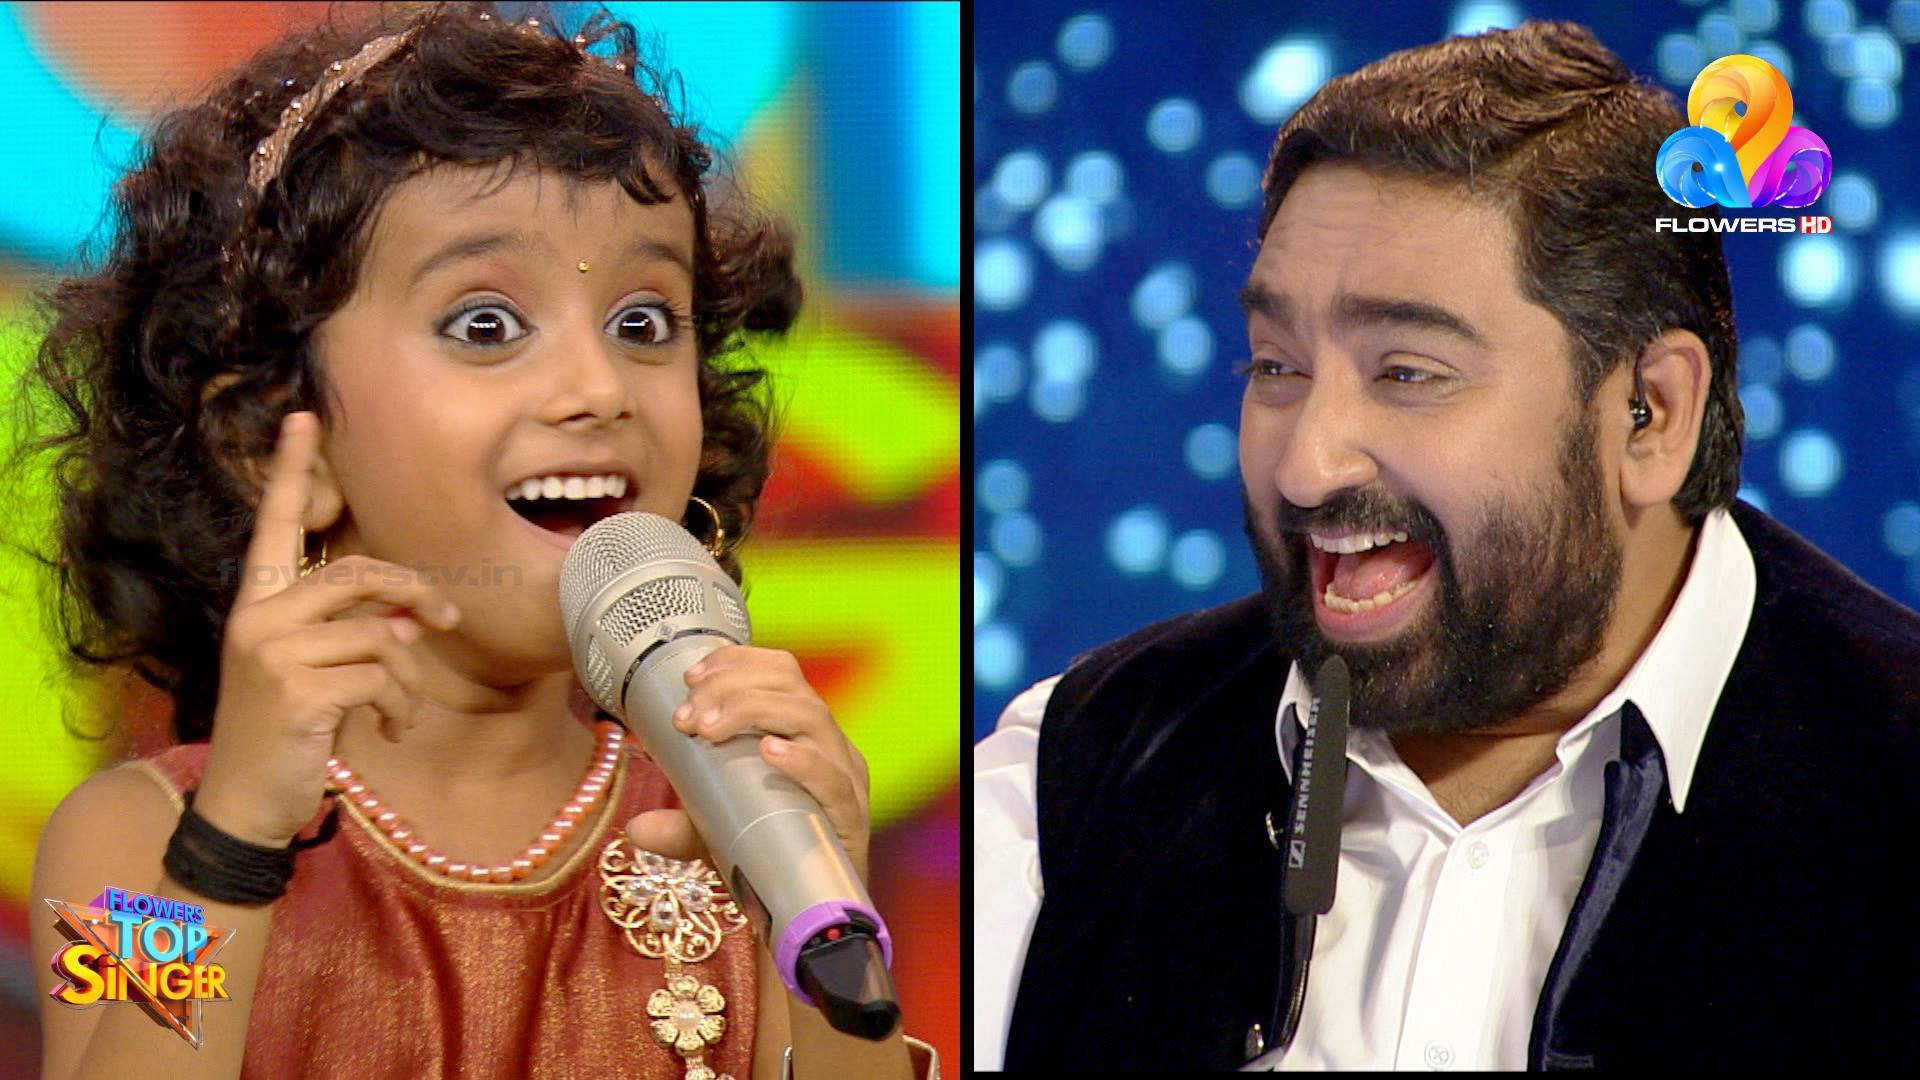 Top Singer: A TV Show that knows its audience - Boy with